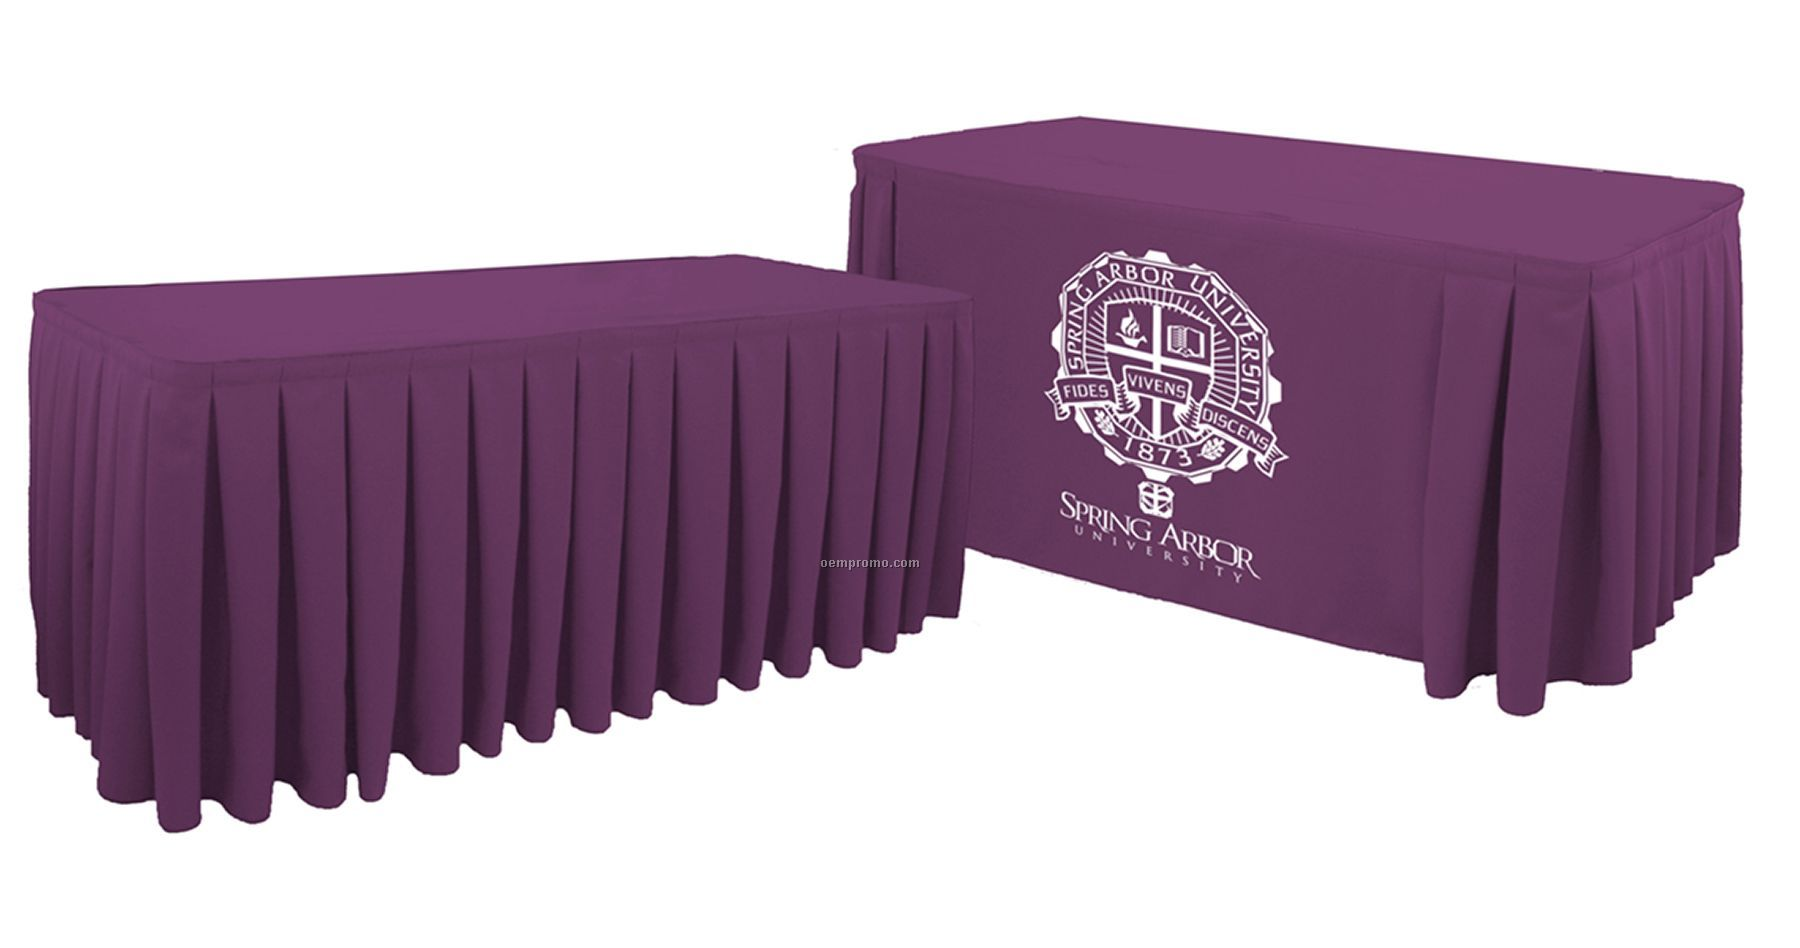 Digitally Printed 15' Box Pleat Table Skirt W/ Open Back - Fits 8ft Table